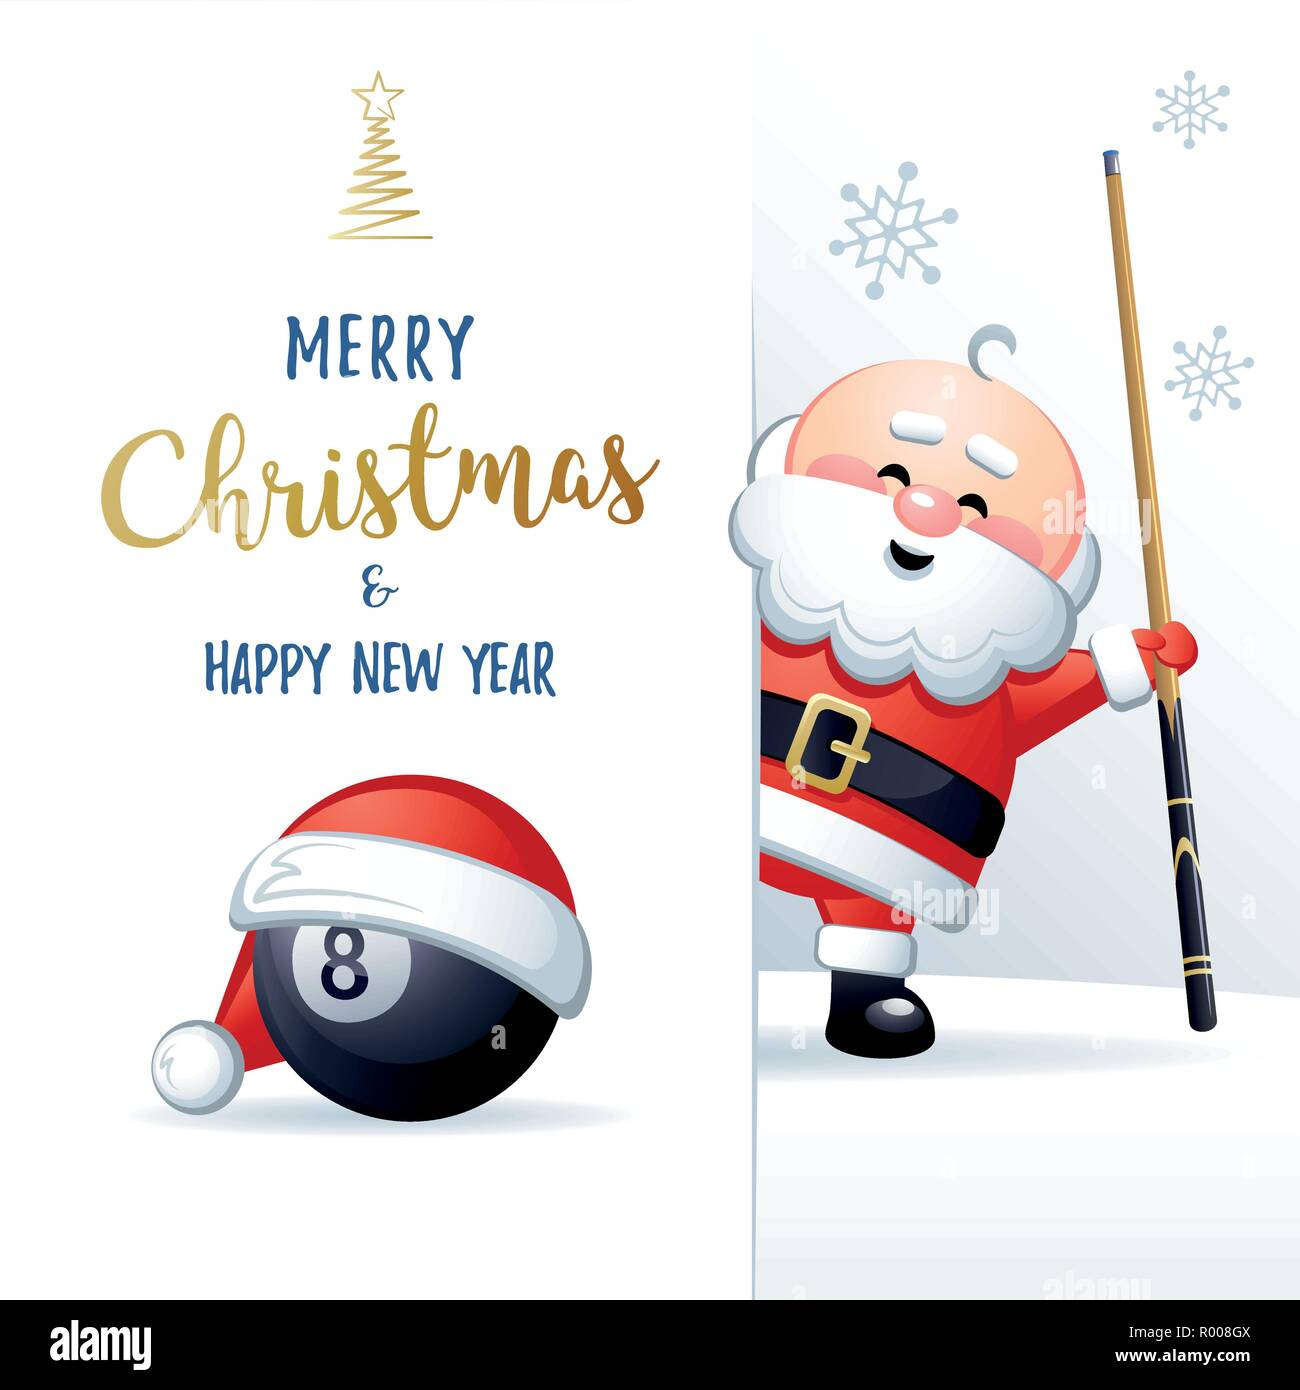 Merry Christmas and Happy New Year. Sports greeting card. Cute Santa Claus with Billiard ball and cue. Vector illustration. - Stock Vector